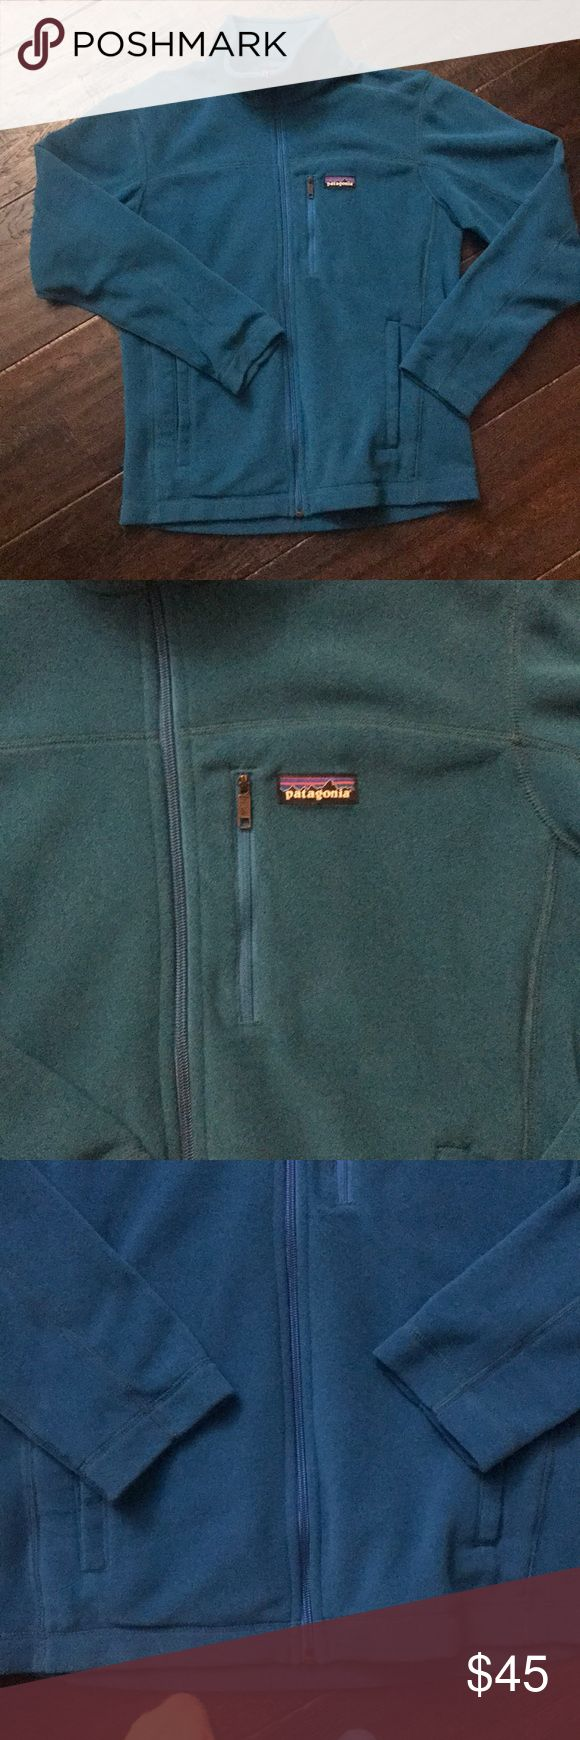 Men's Patagonia jacket Men's Patagonia fleece jacket. Only worn twice, in excellent condition. Patagonia Jackets & Coats